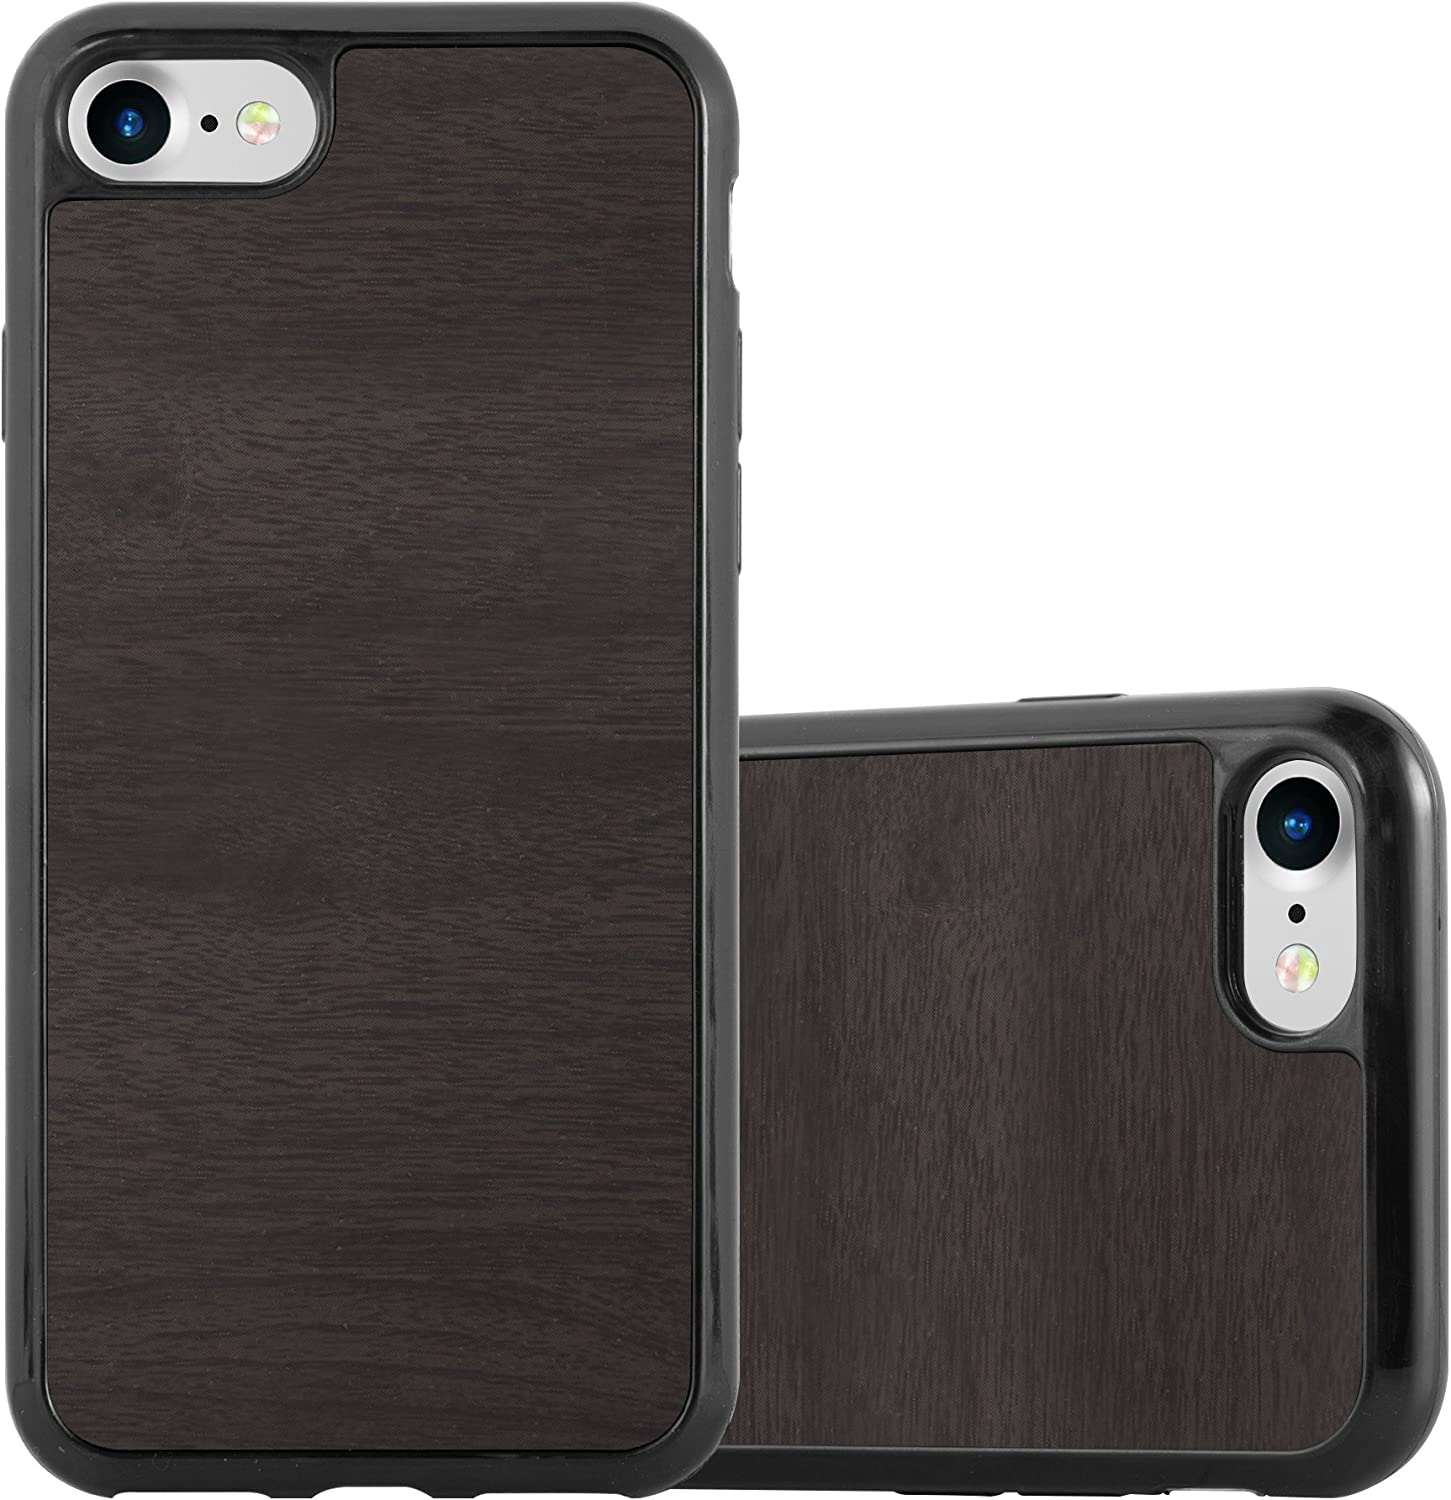 Cadorabo Case Compatible with Apple iPhone 7 / iPhone 7S / iPhone 8 in Wooden Black - Shockproof and Scratch Resistant TPU Silicone Cover - Ultra Slim Protective Gel Shell Bumper Back Skin